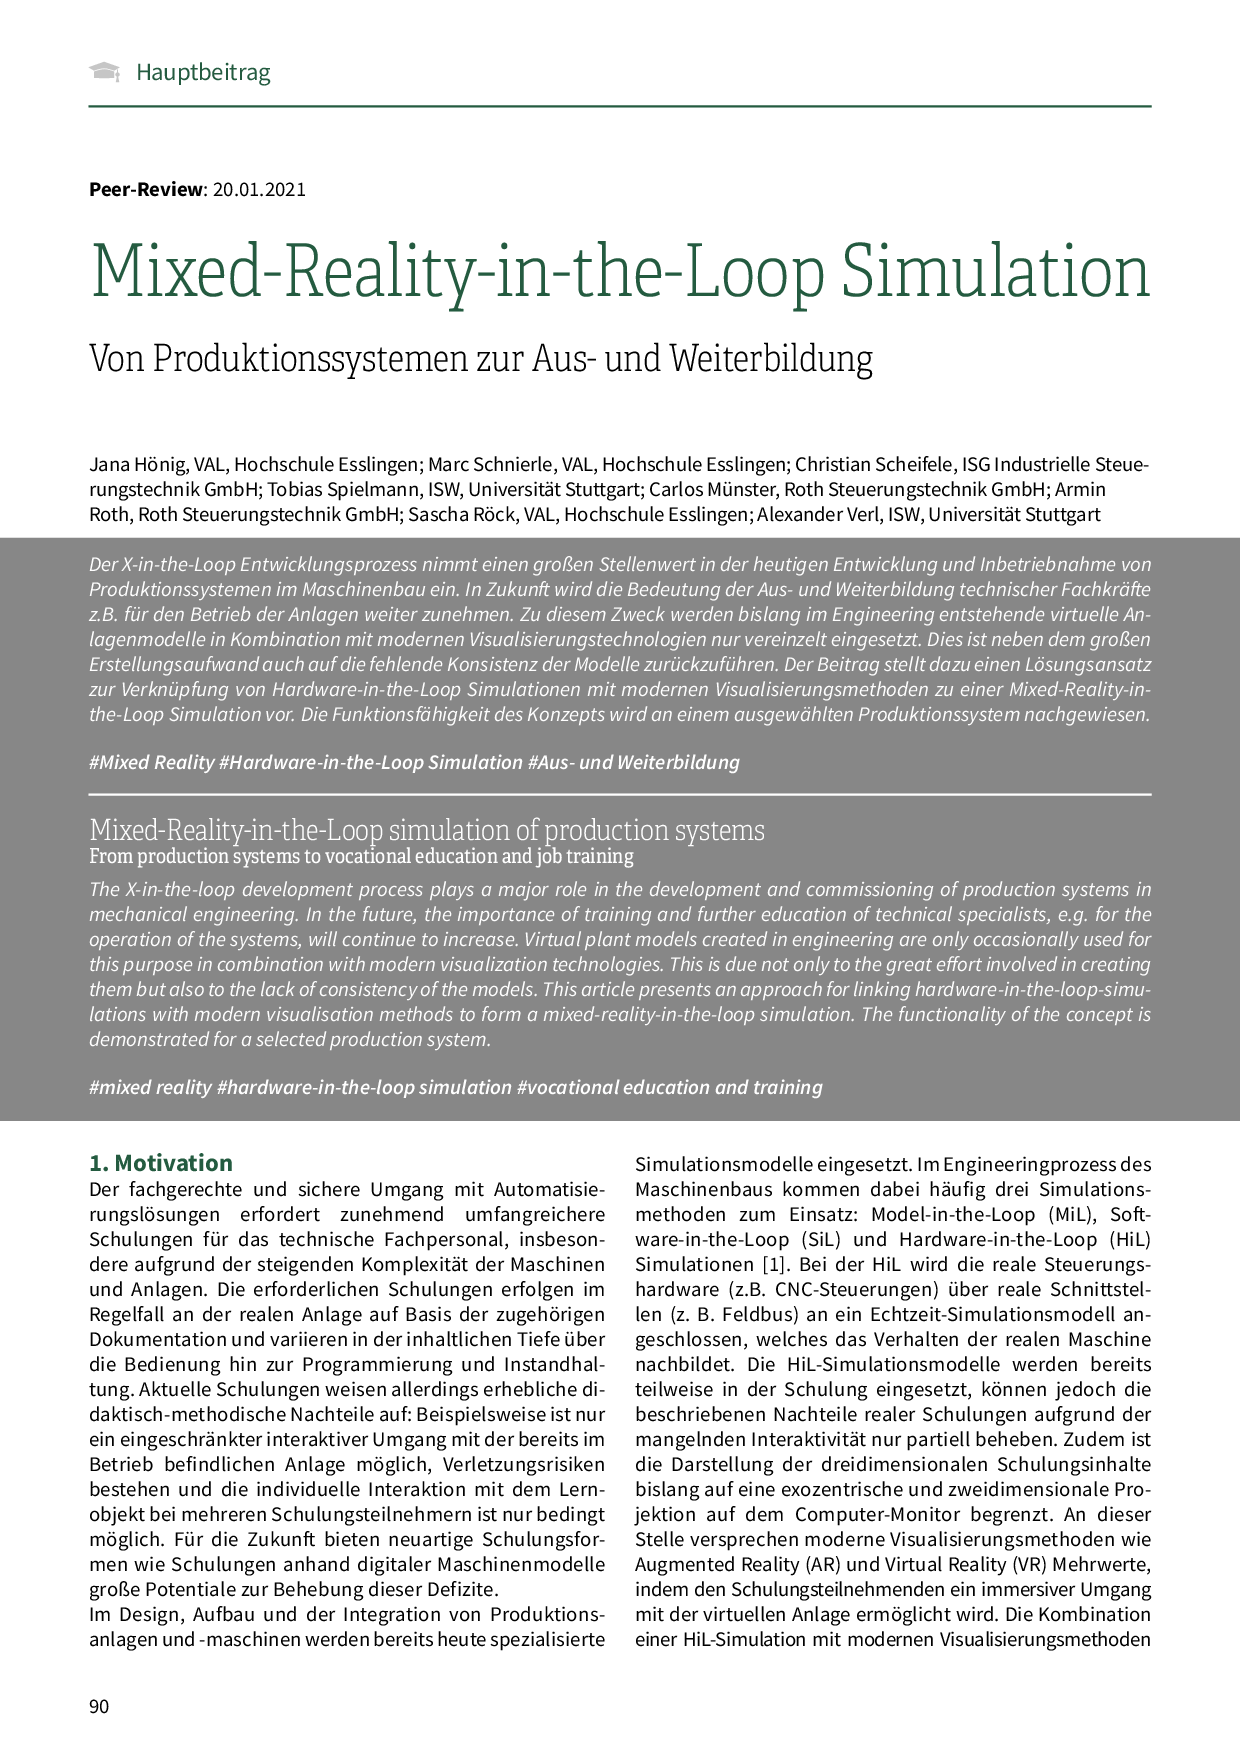 Mixed-Reality-in-the-Loop Simulation